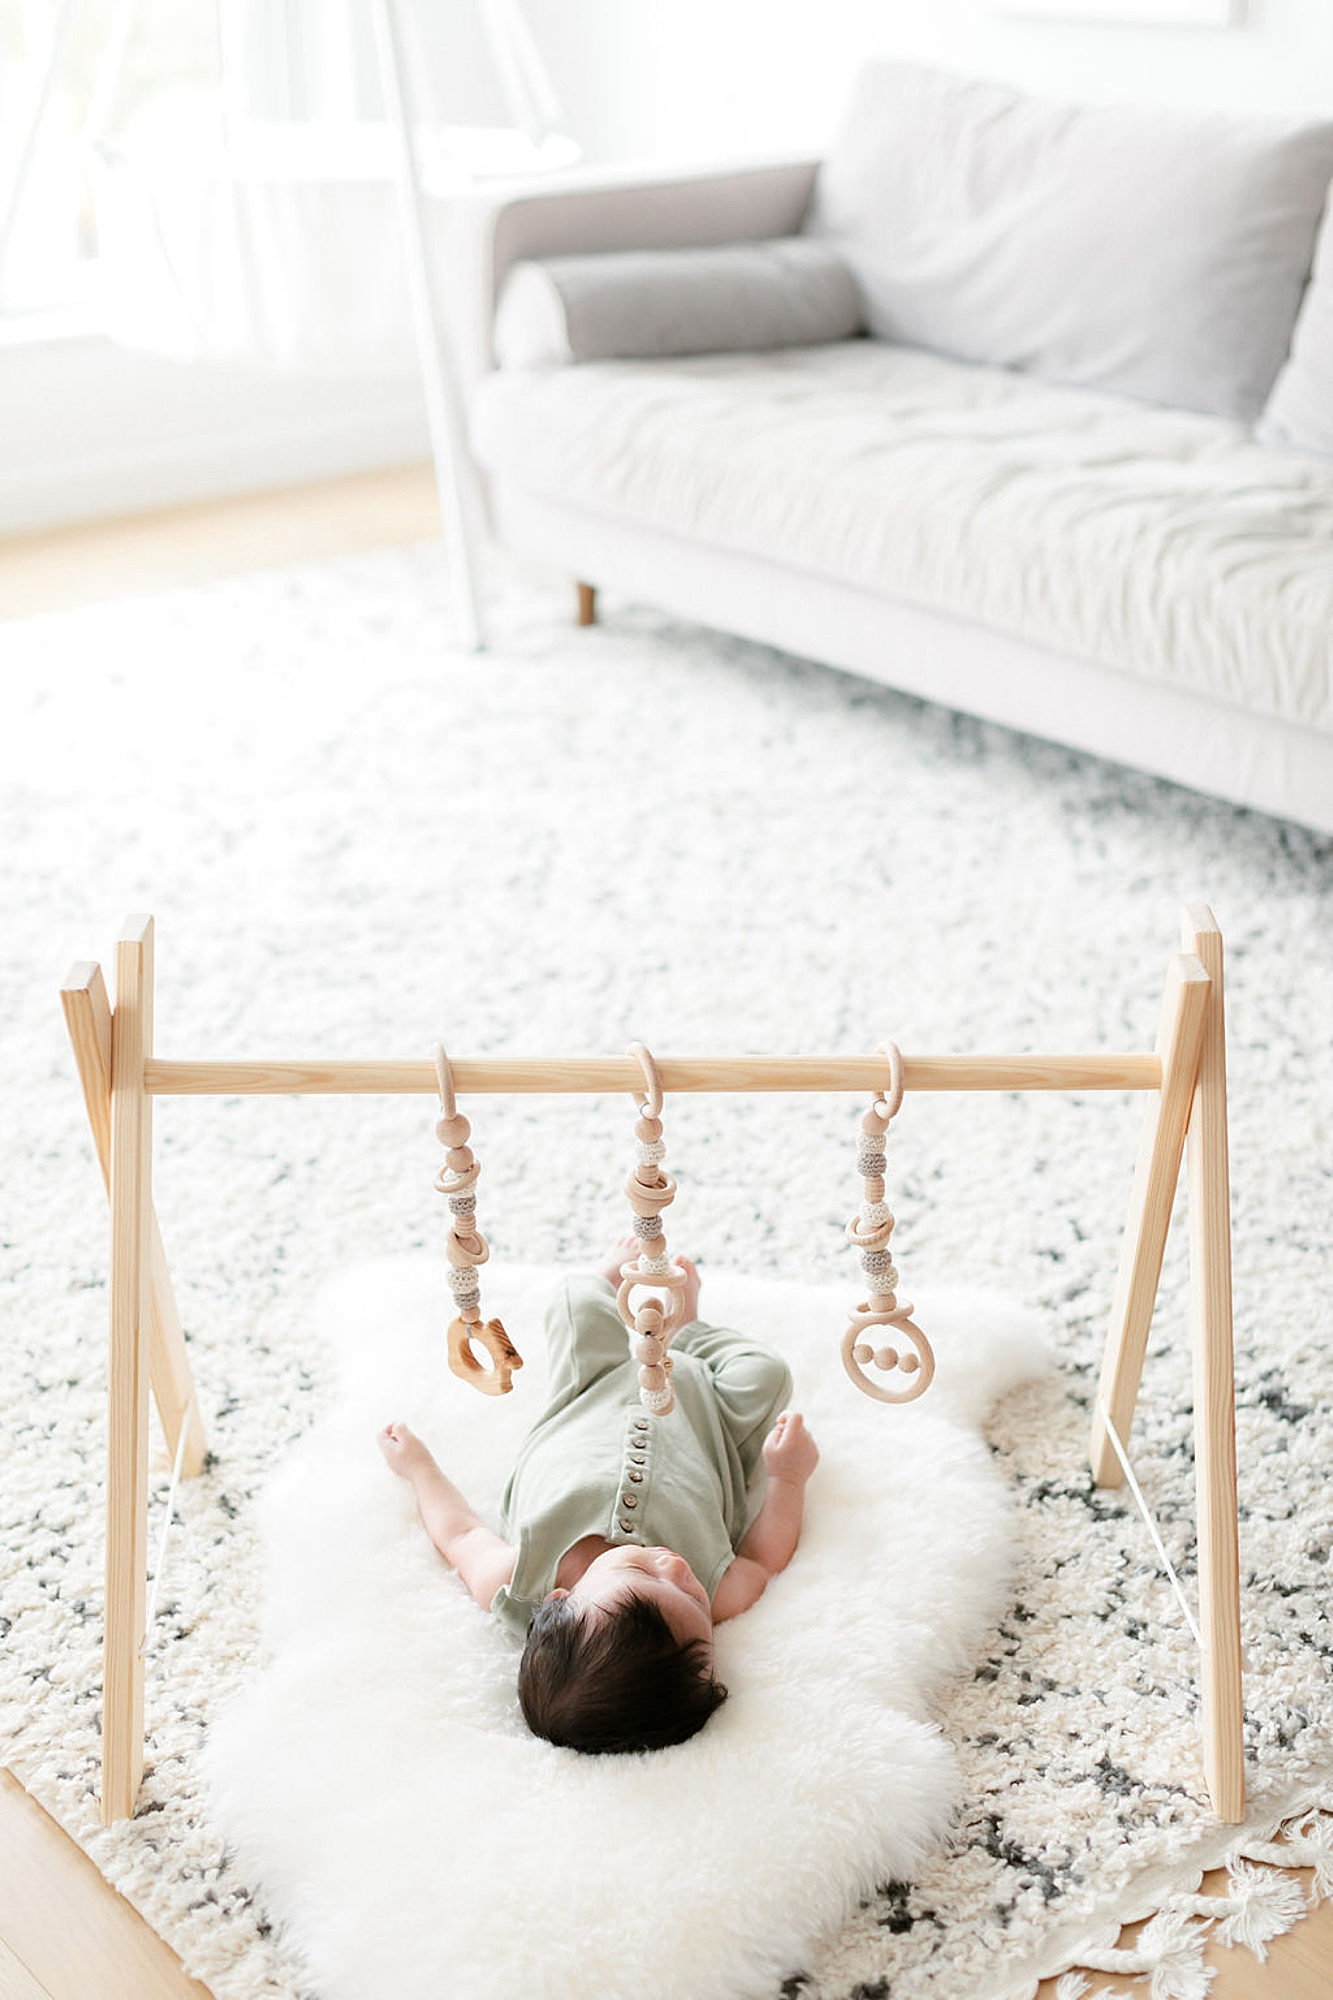 Lifestyle Home Newborn Session Family Portraits NYC by Magdalena Studios8